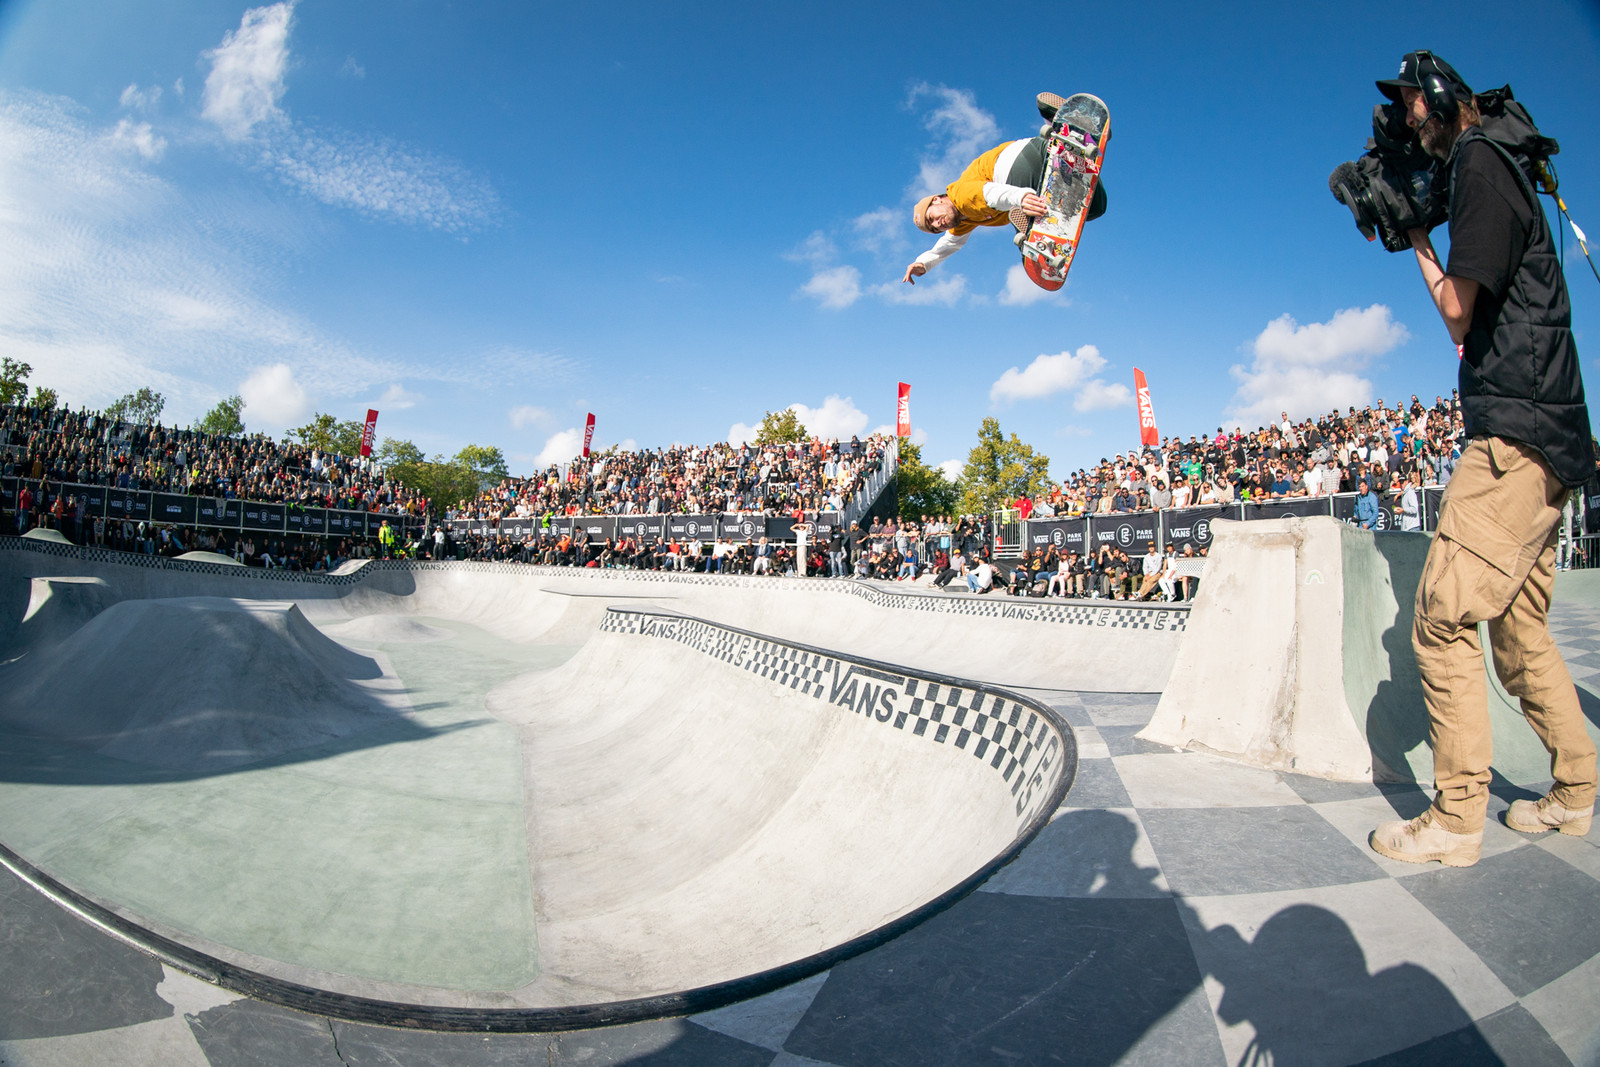 VANS PARK SERIES 2019 PRO TOUR SEASON ANNOUNCED